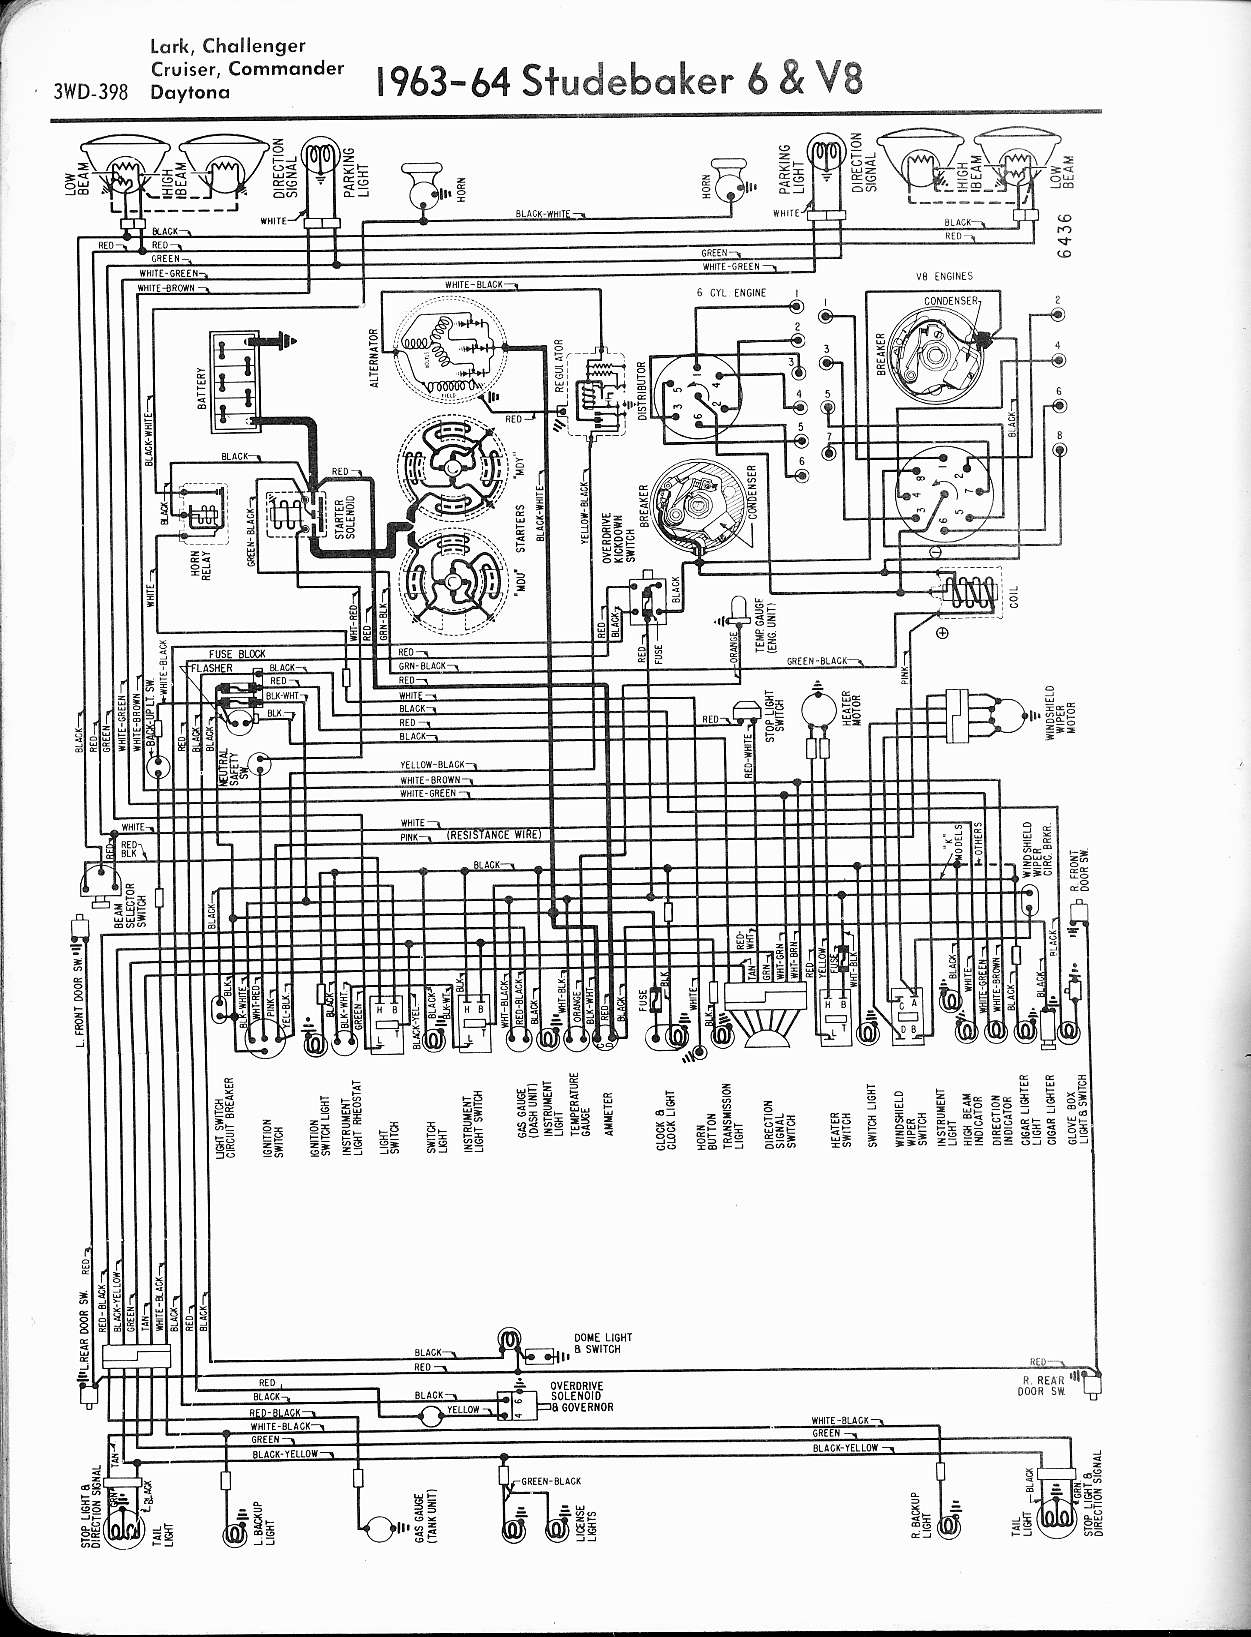 studebaker wiring diagrams wiring diagrams schematics rh quizzable co Club Cart Battery Wiring Diagram Simple Car Wiring Diagram